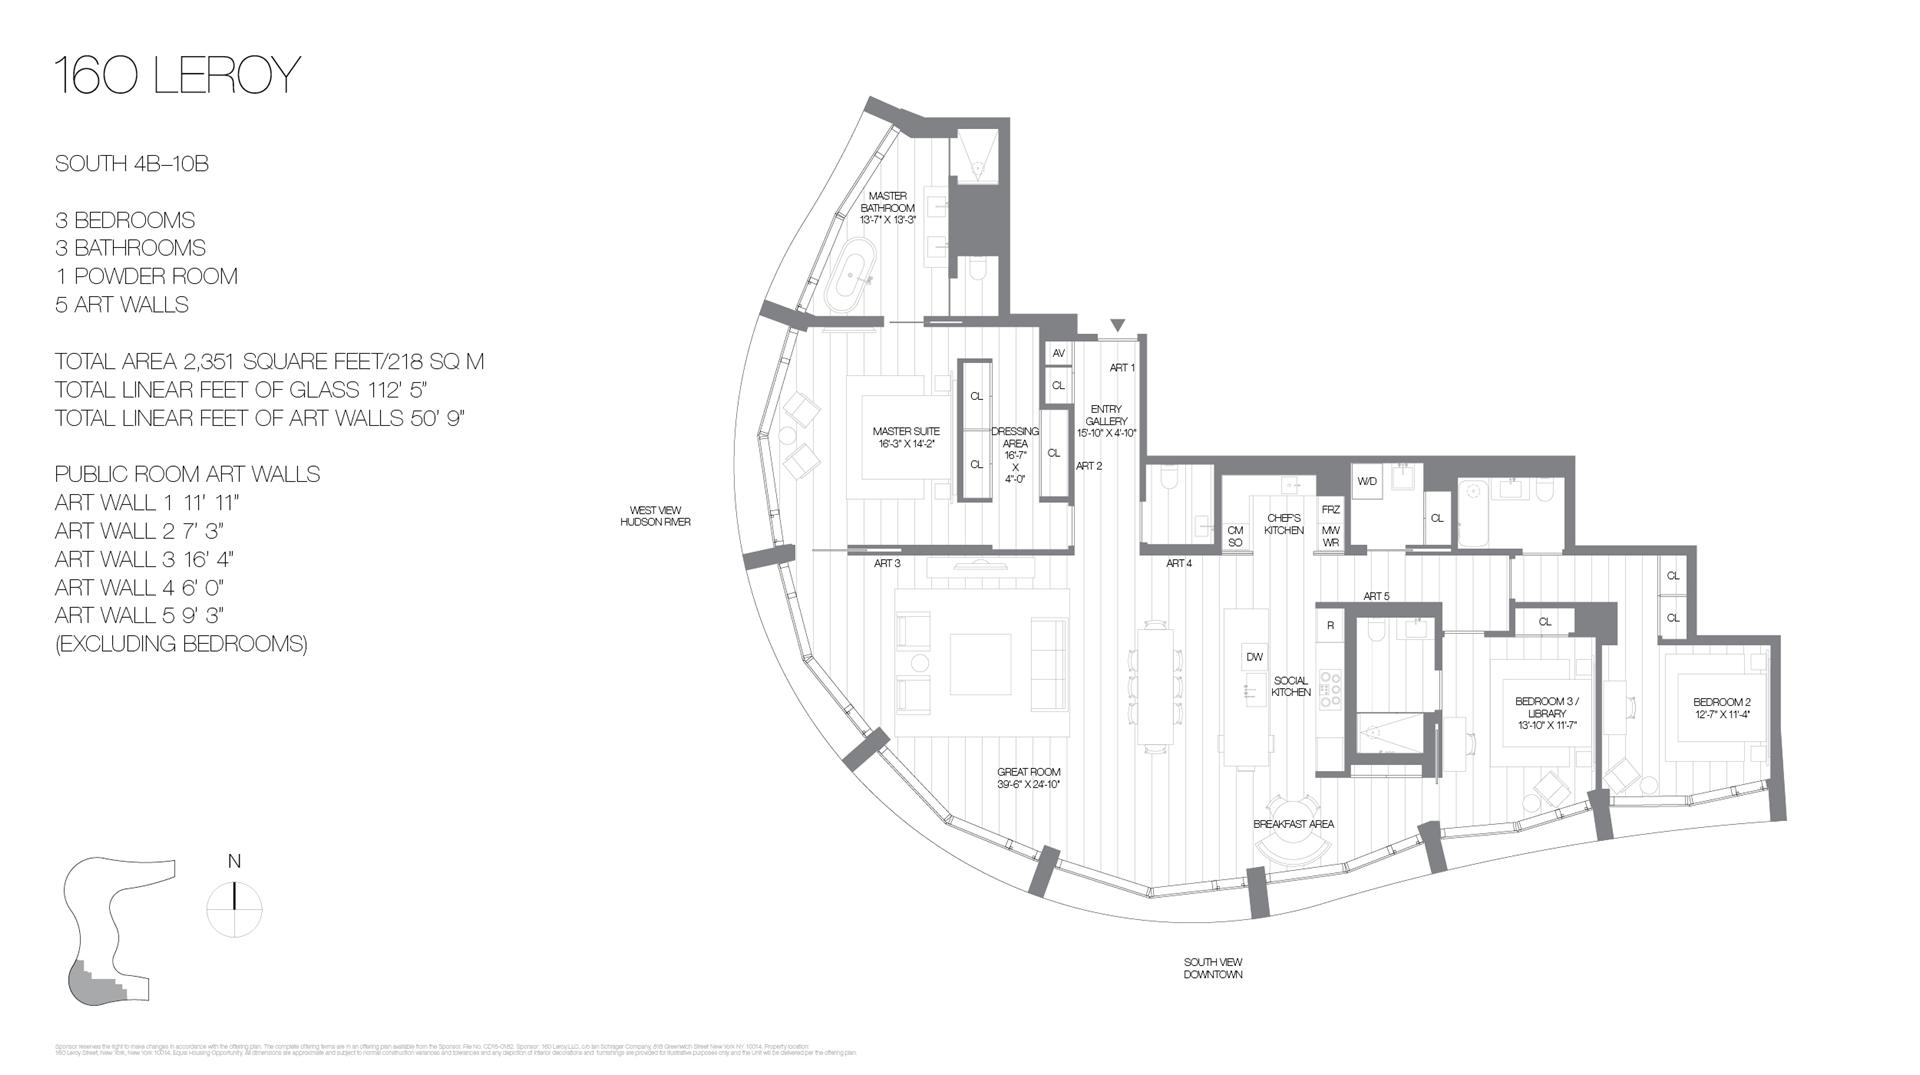 Floor plan of 160 Leroy St, SOUTH5B - West Village - Meatpacking District, New York